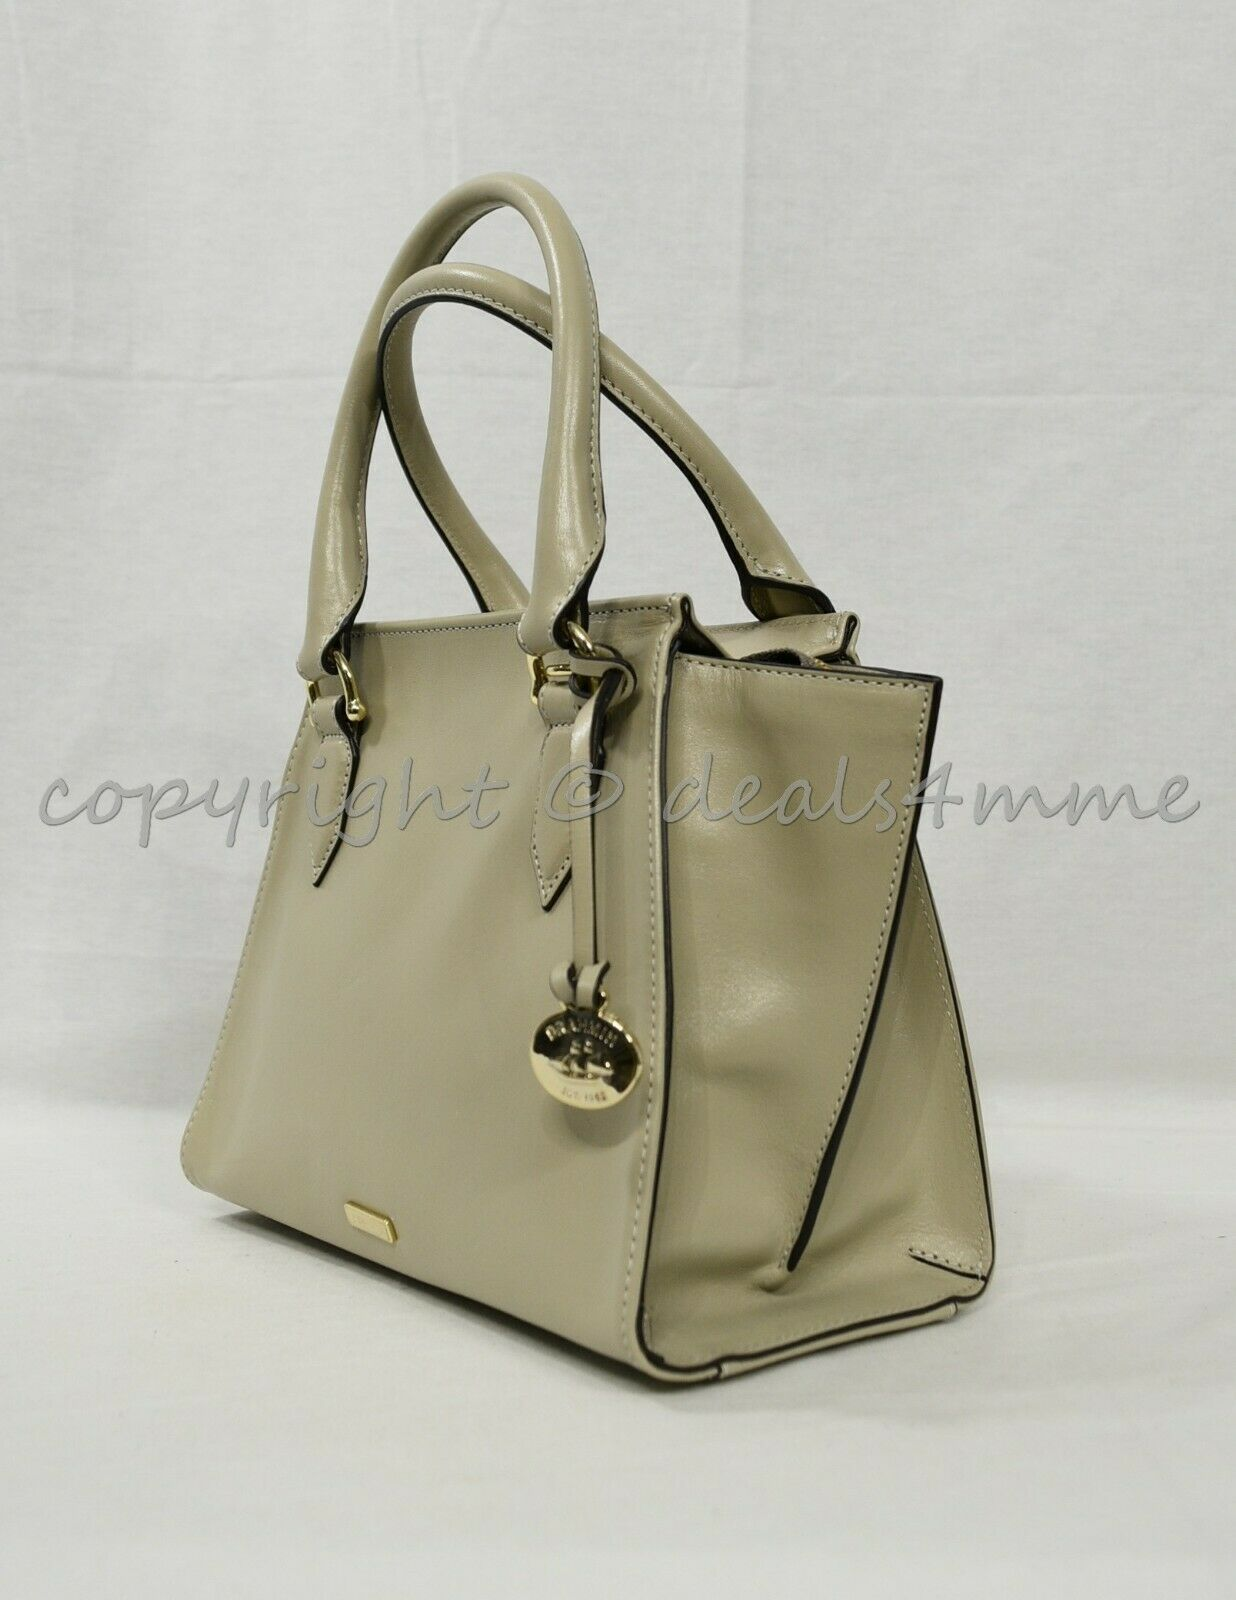 NWT Brahmin Mini Priscilla Smooth Leather Satchel/Shoulder Bag in Sand Topsail image 8